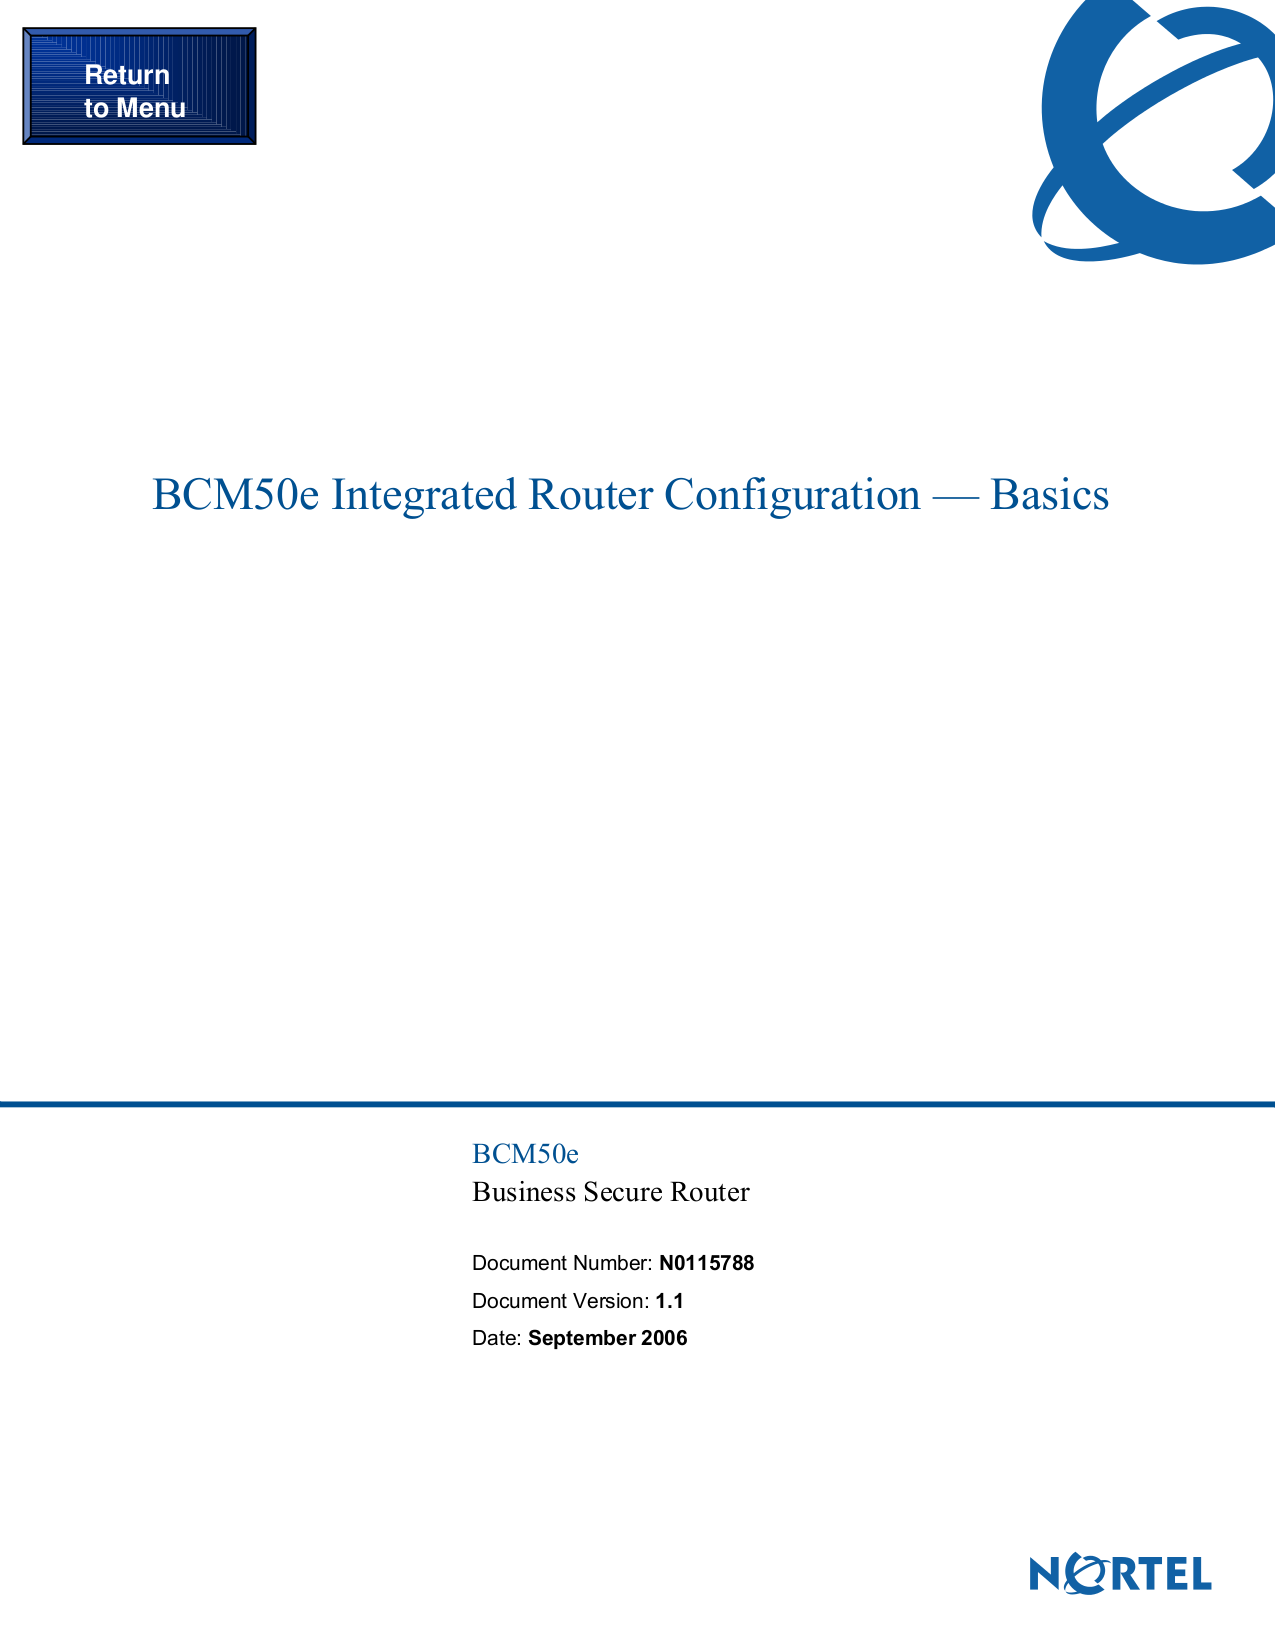 pdf for Nortel Router BLN manual